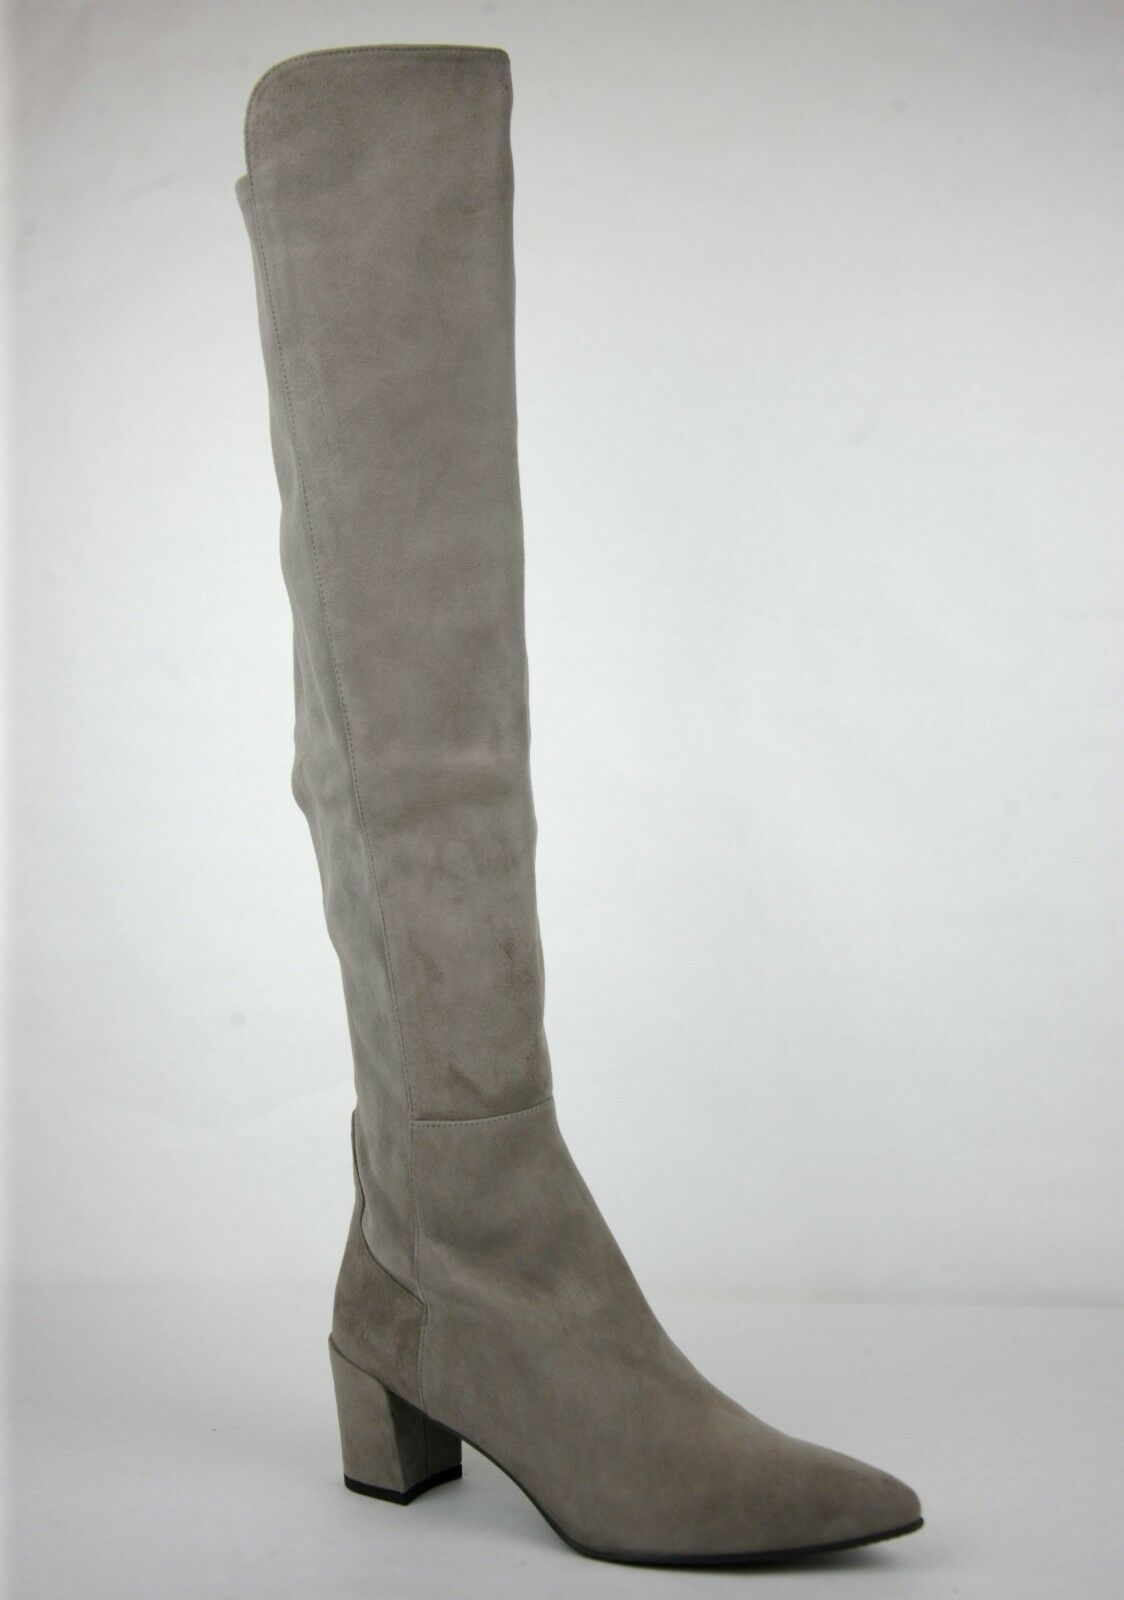 765 New Stuart Stuart Stuart Weitzman Taupe Suede Allwayhunk Over-The-Knee Boot 3b4ad0